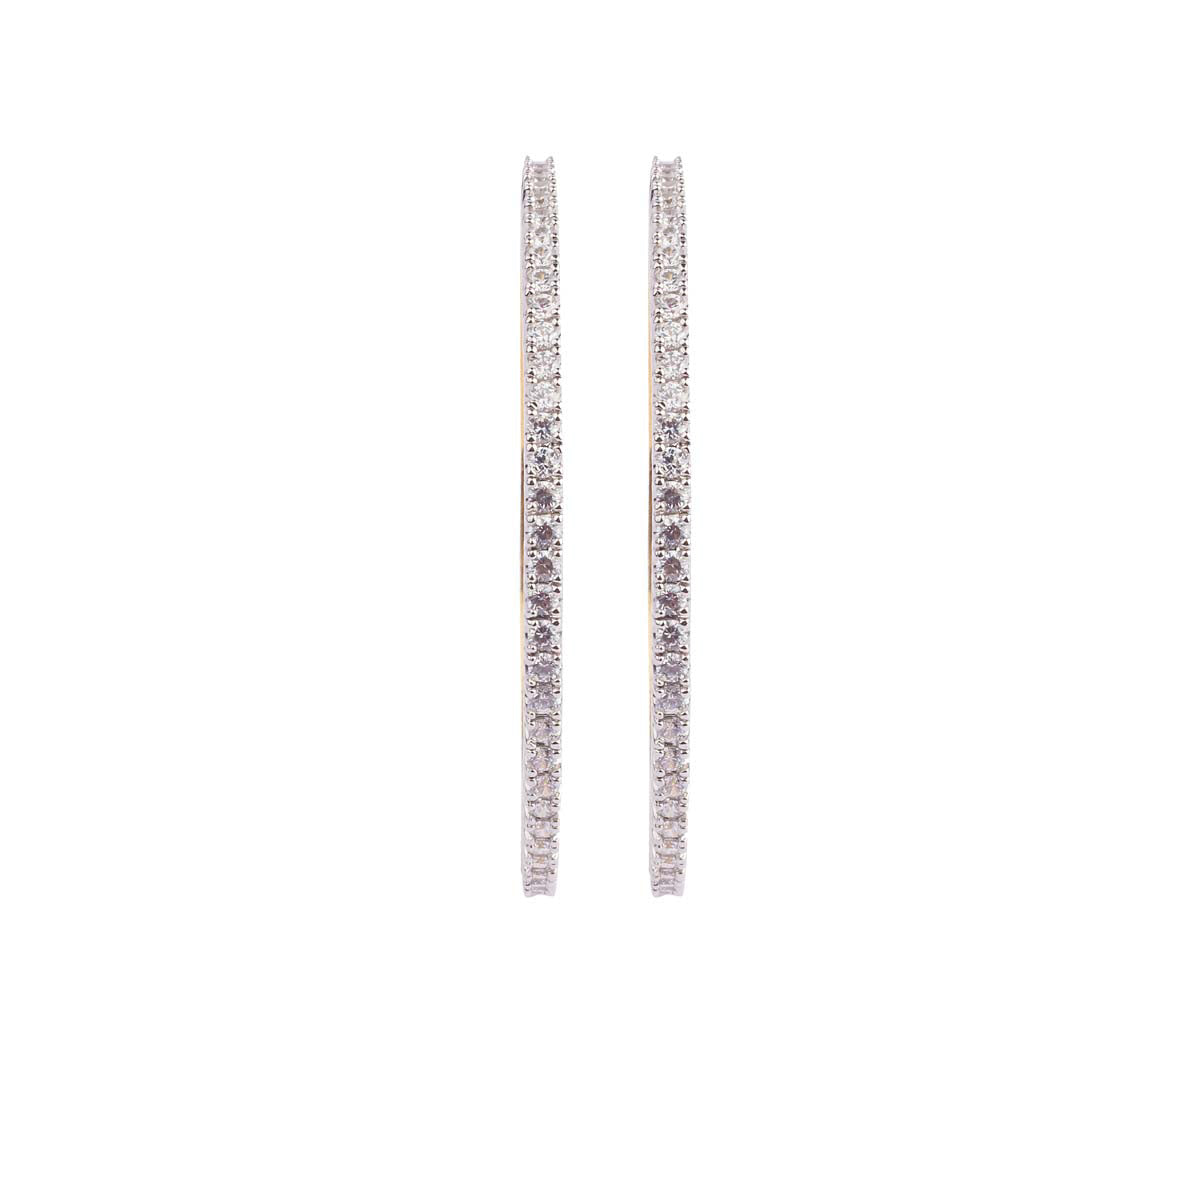 Single Lined Small Solitaire Bangle Pair